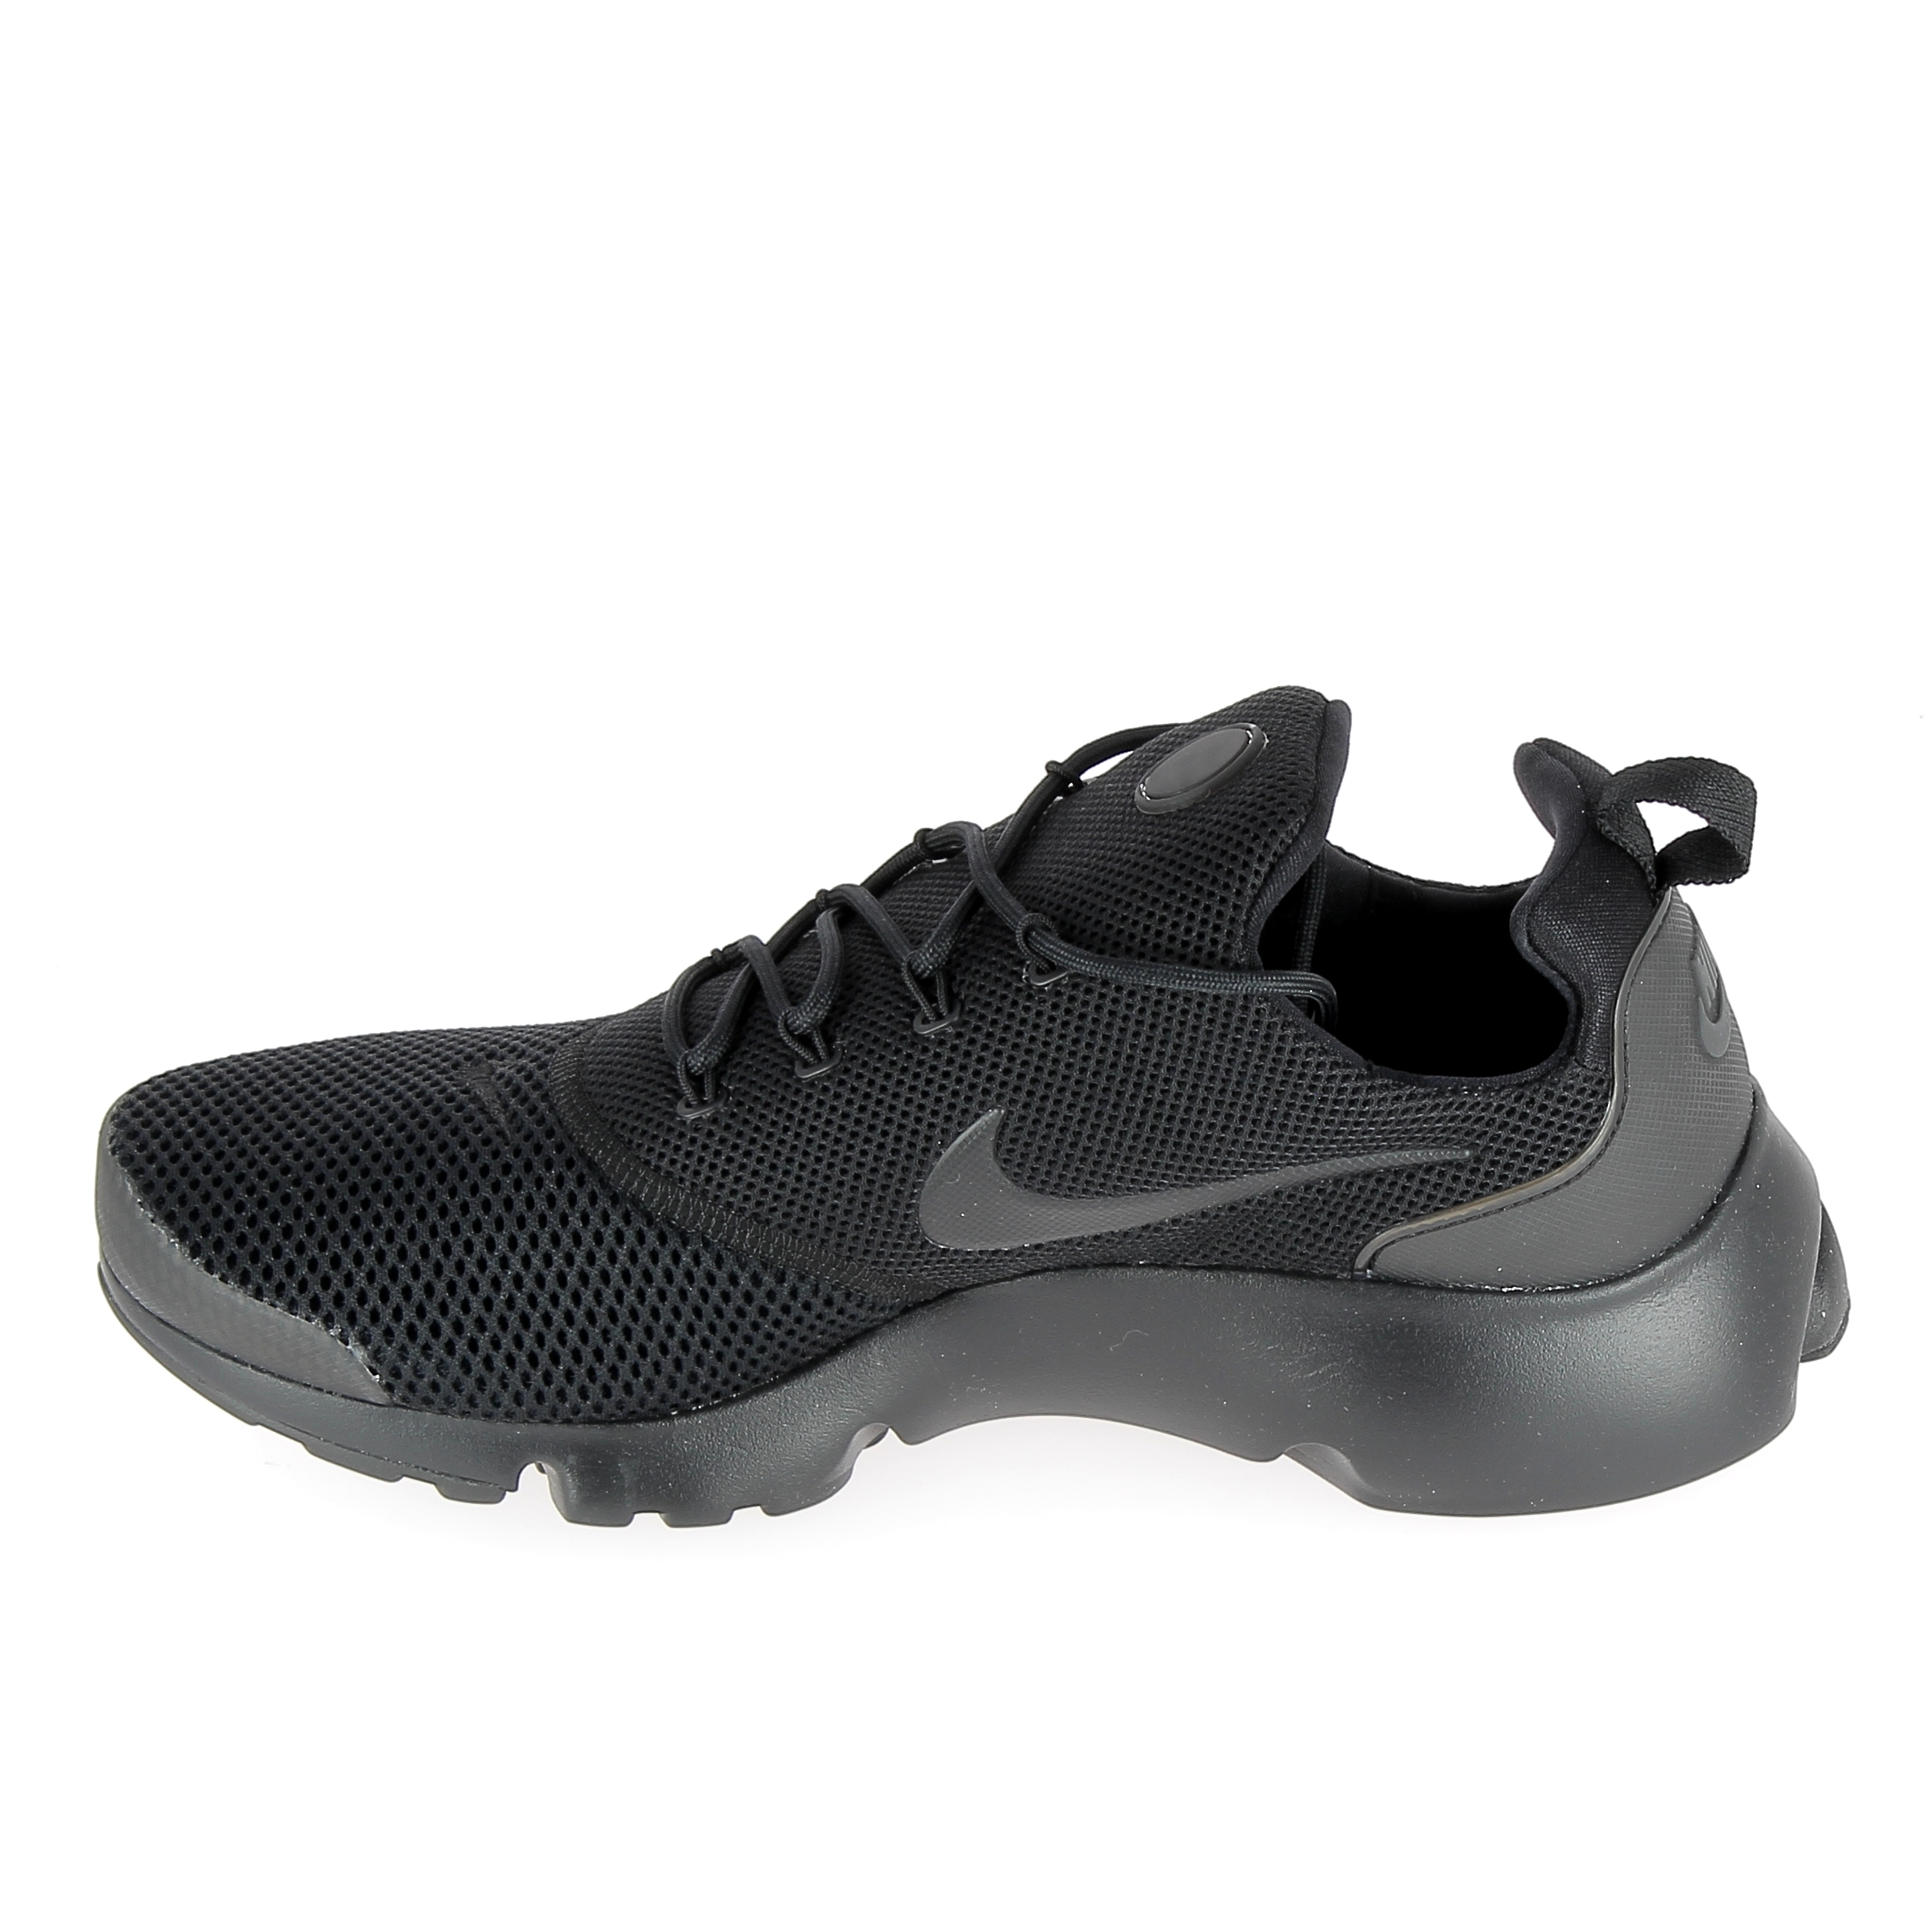 size 40 8a79d a7e49 Basket mode, SneakerBasket mode - Sneakers NIKE Presto Fly Noir